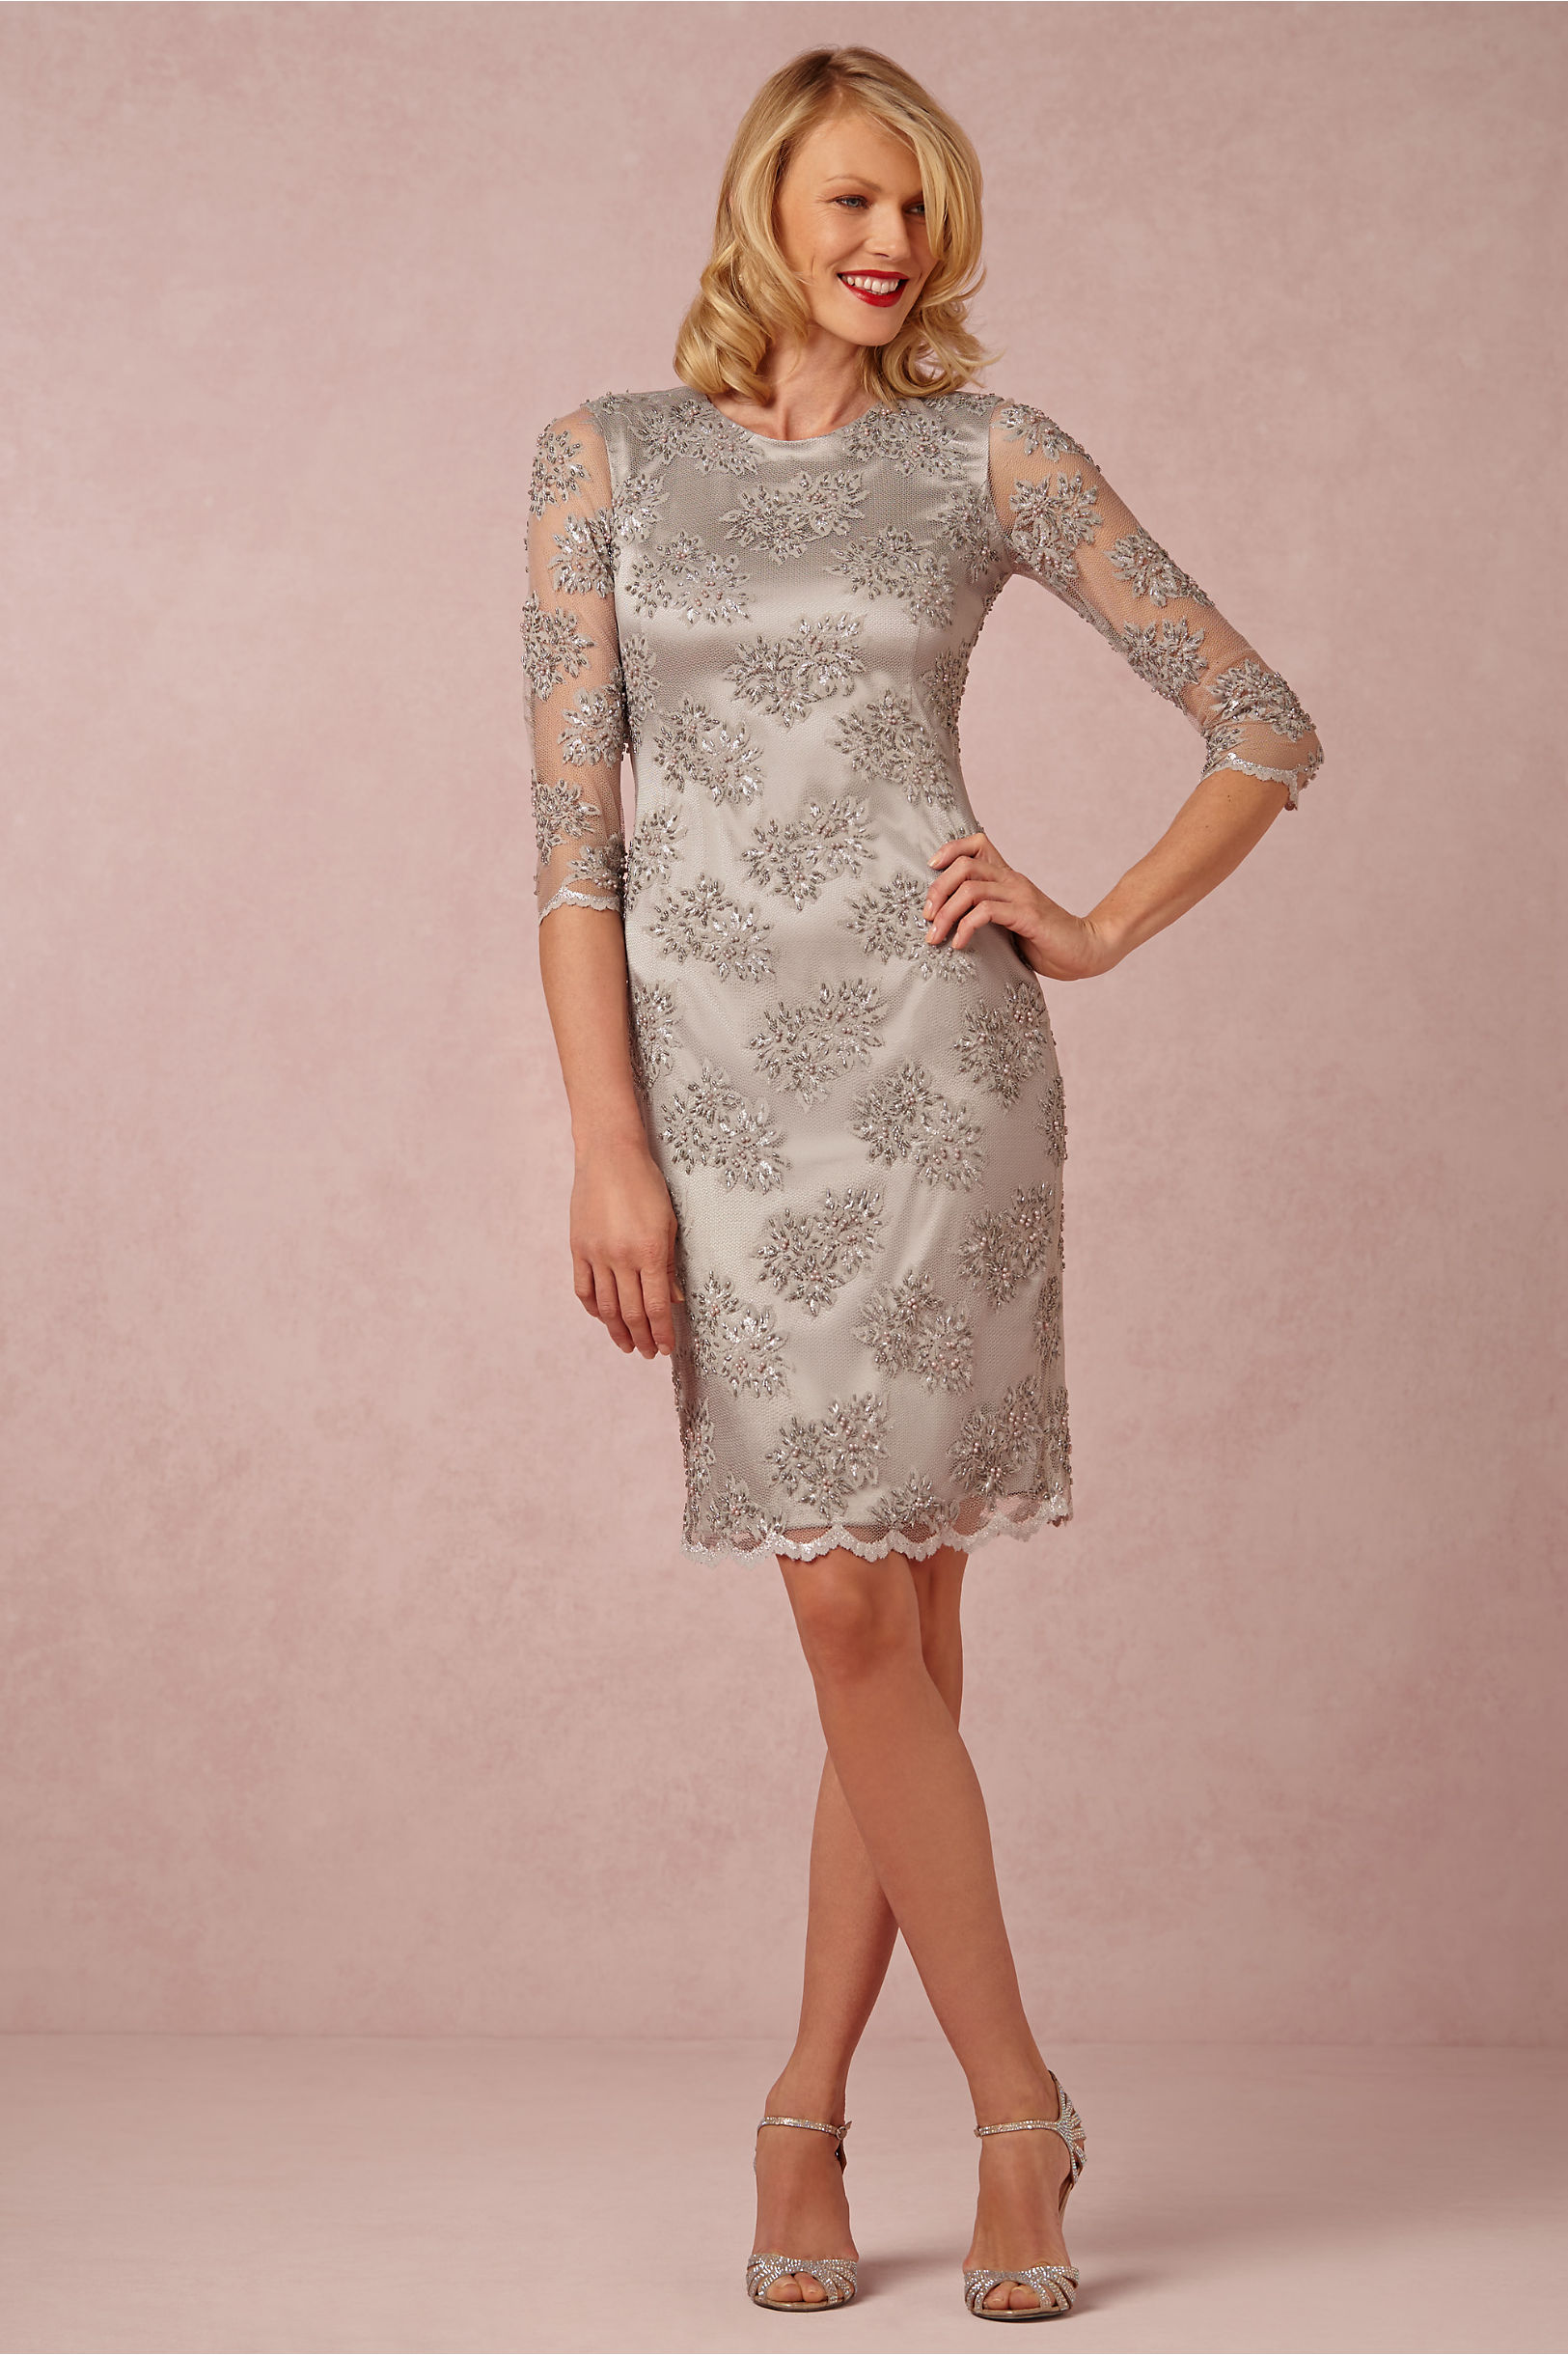 Mignon Doo Silver Crystaline Dress Bhldn